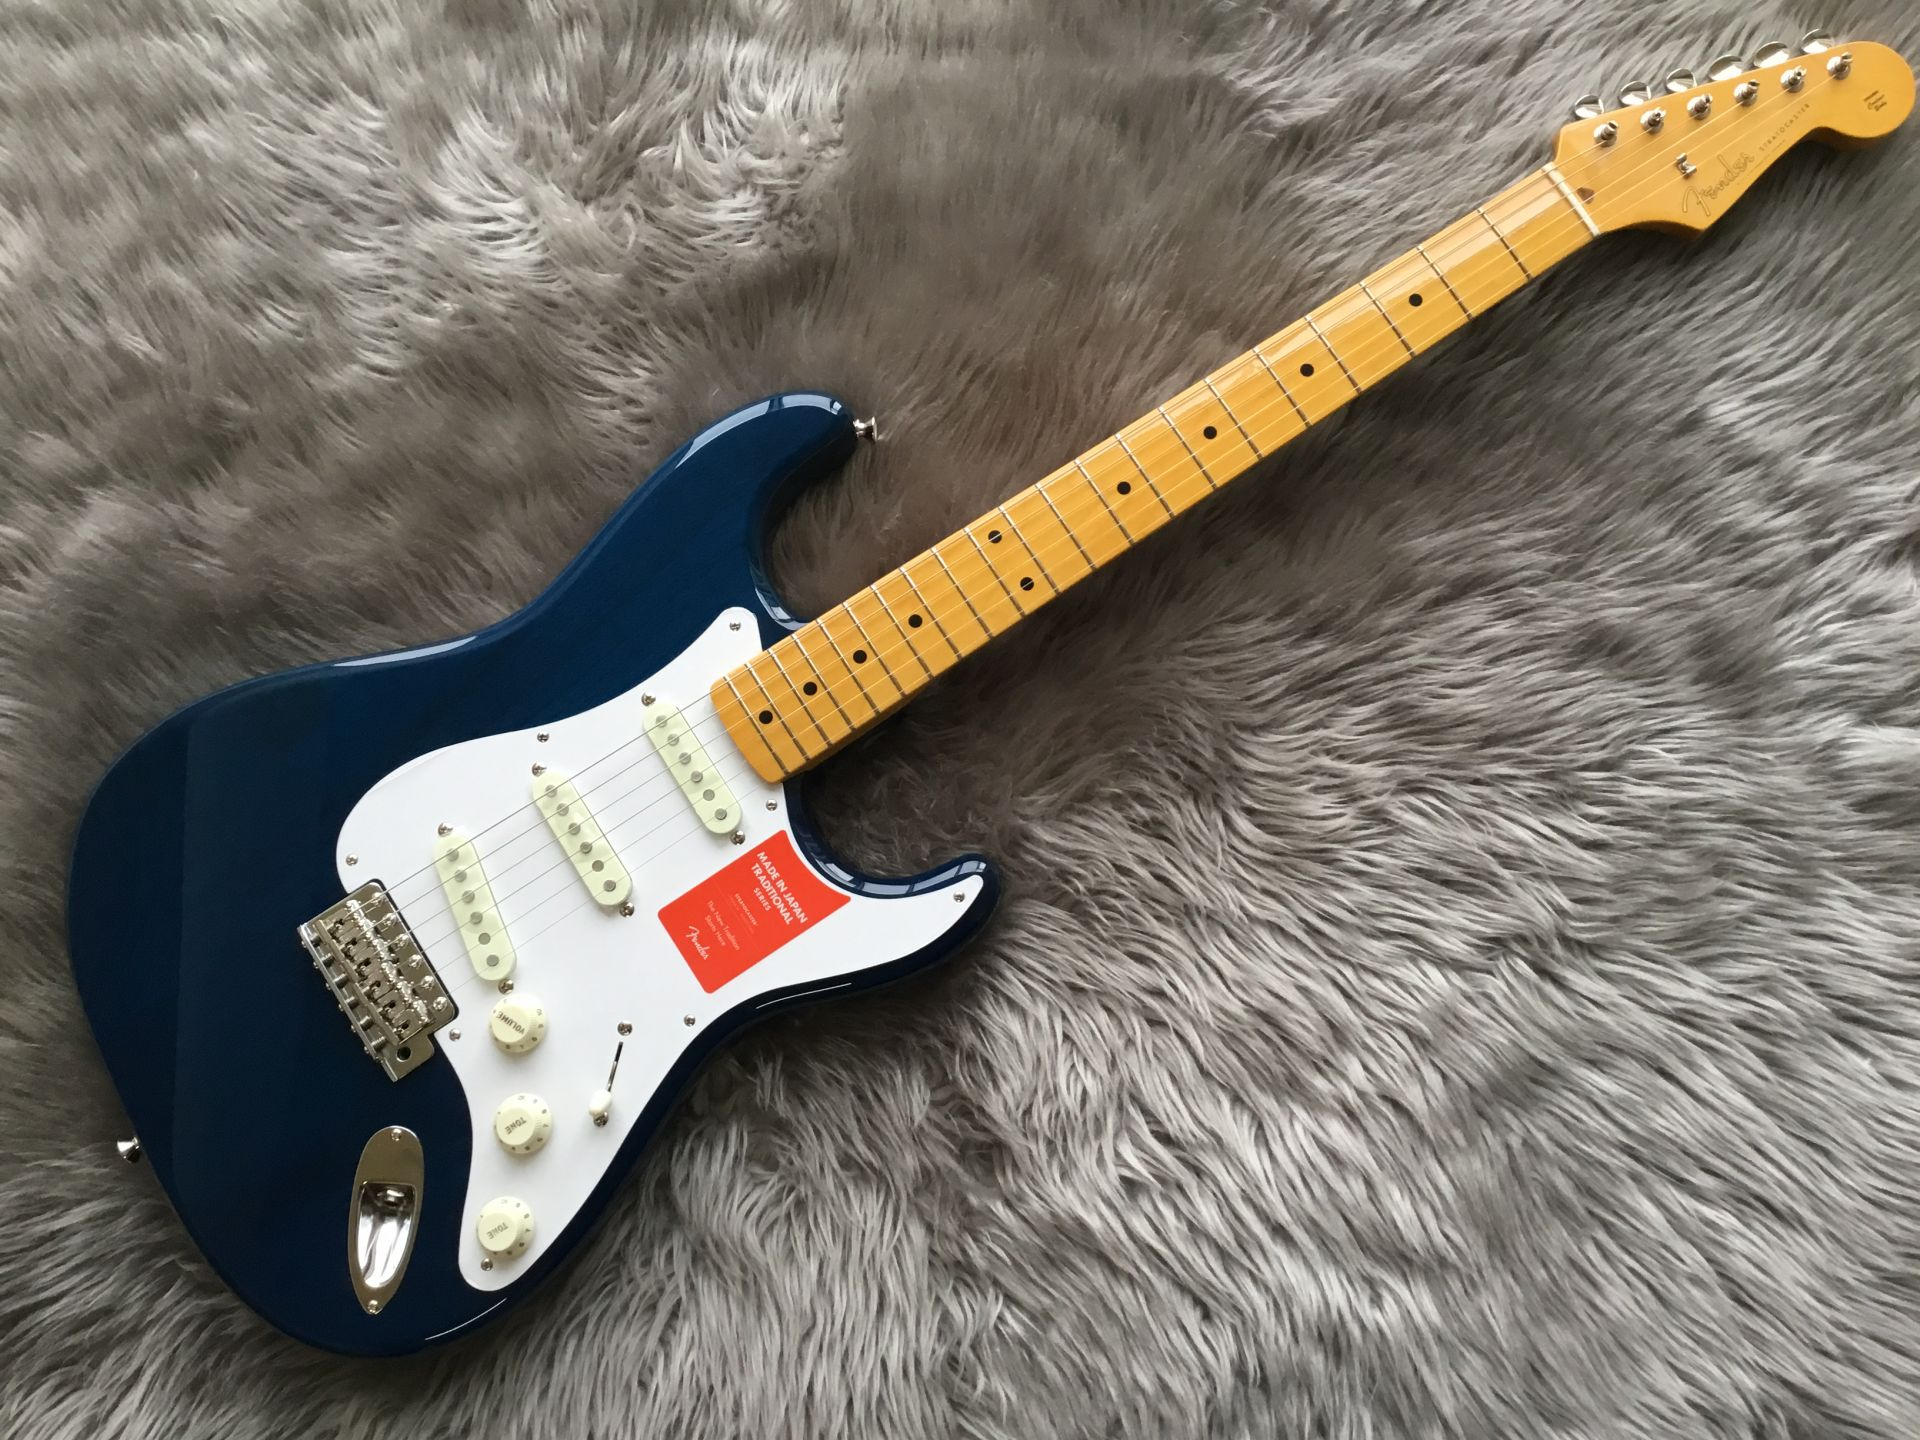 Fender Made in Japan Traditional 58 Stratocasterのボディトップ-アップ画像